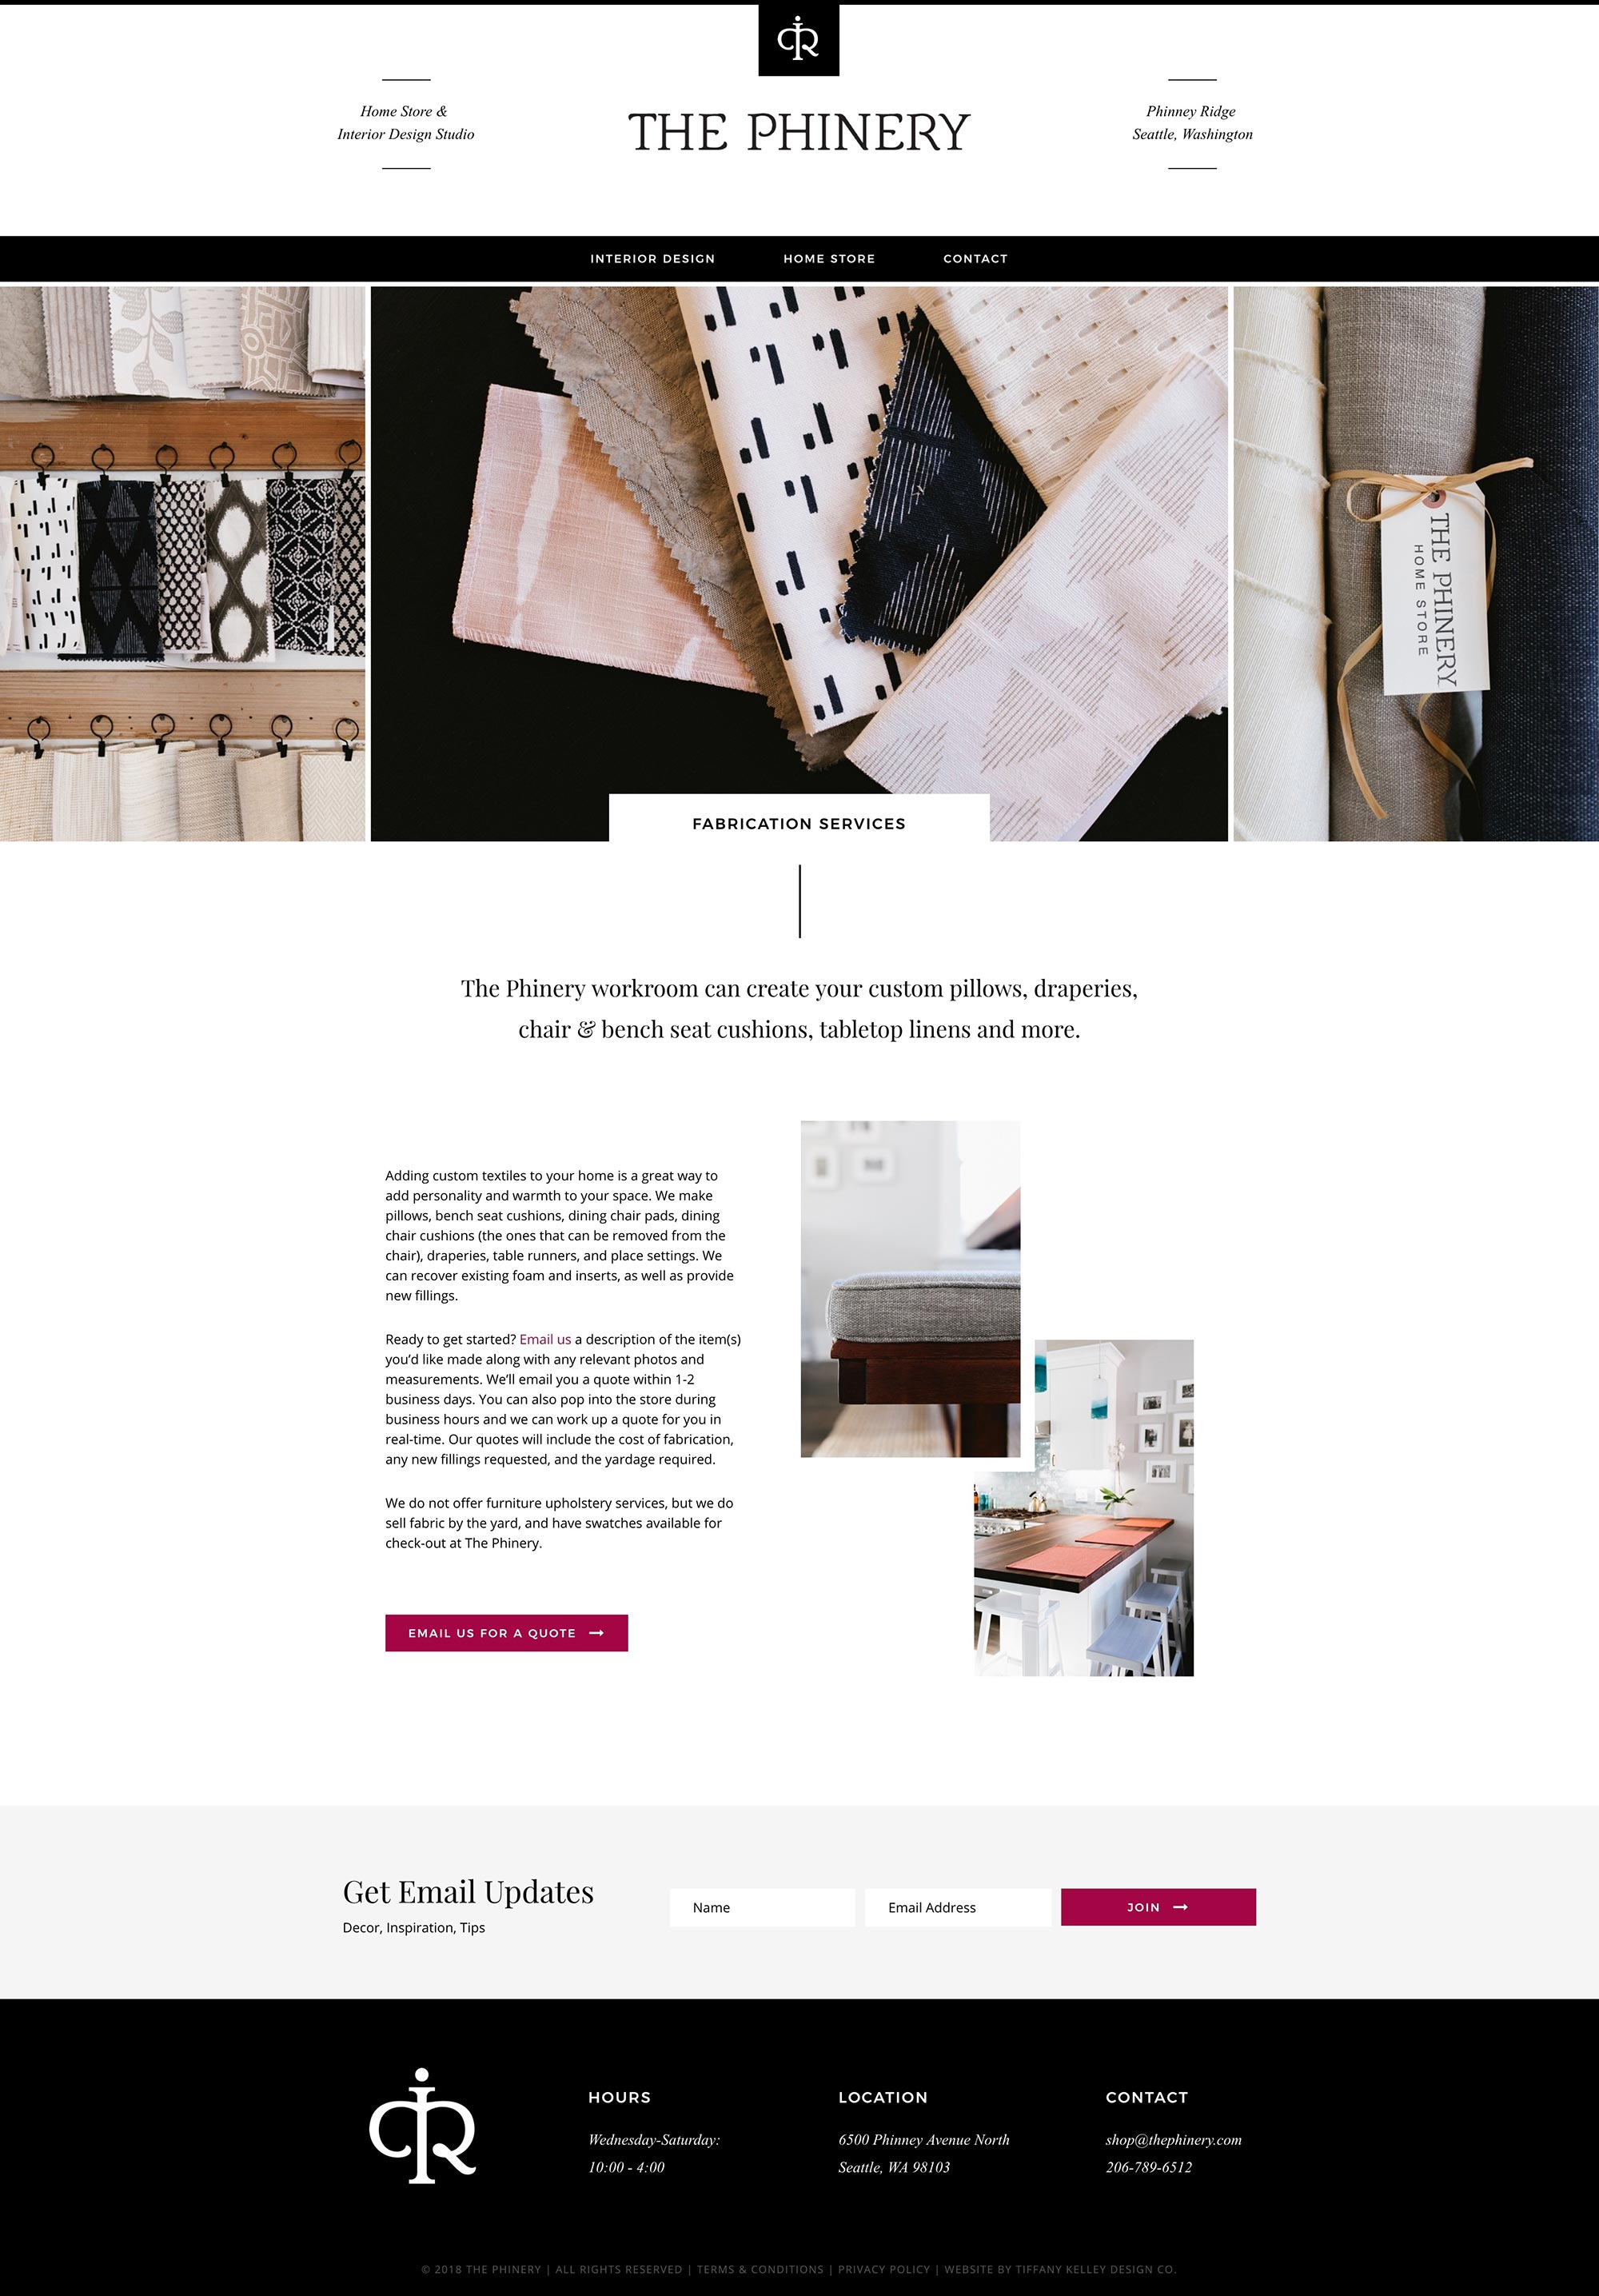 fabrication services web design the phinery interior designer